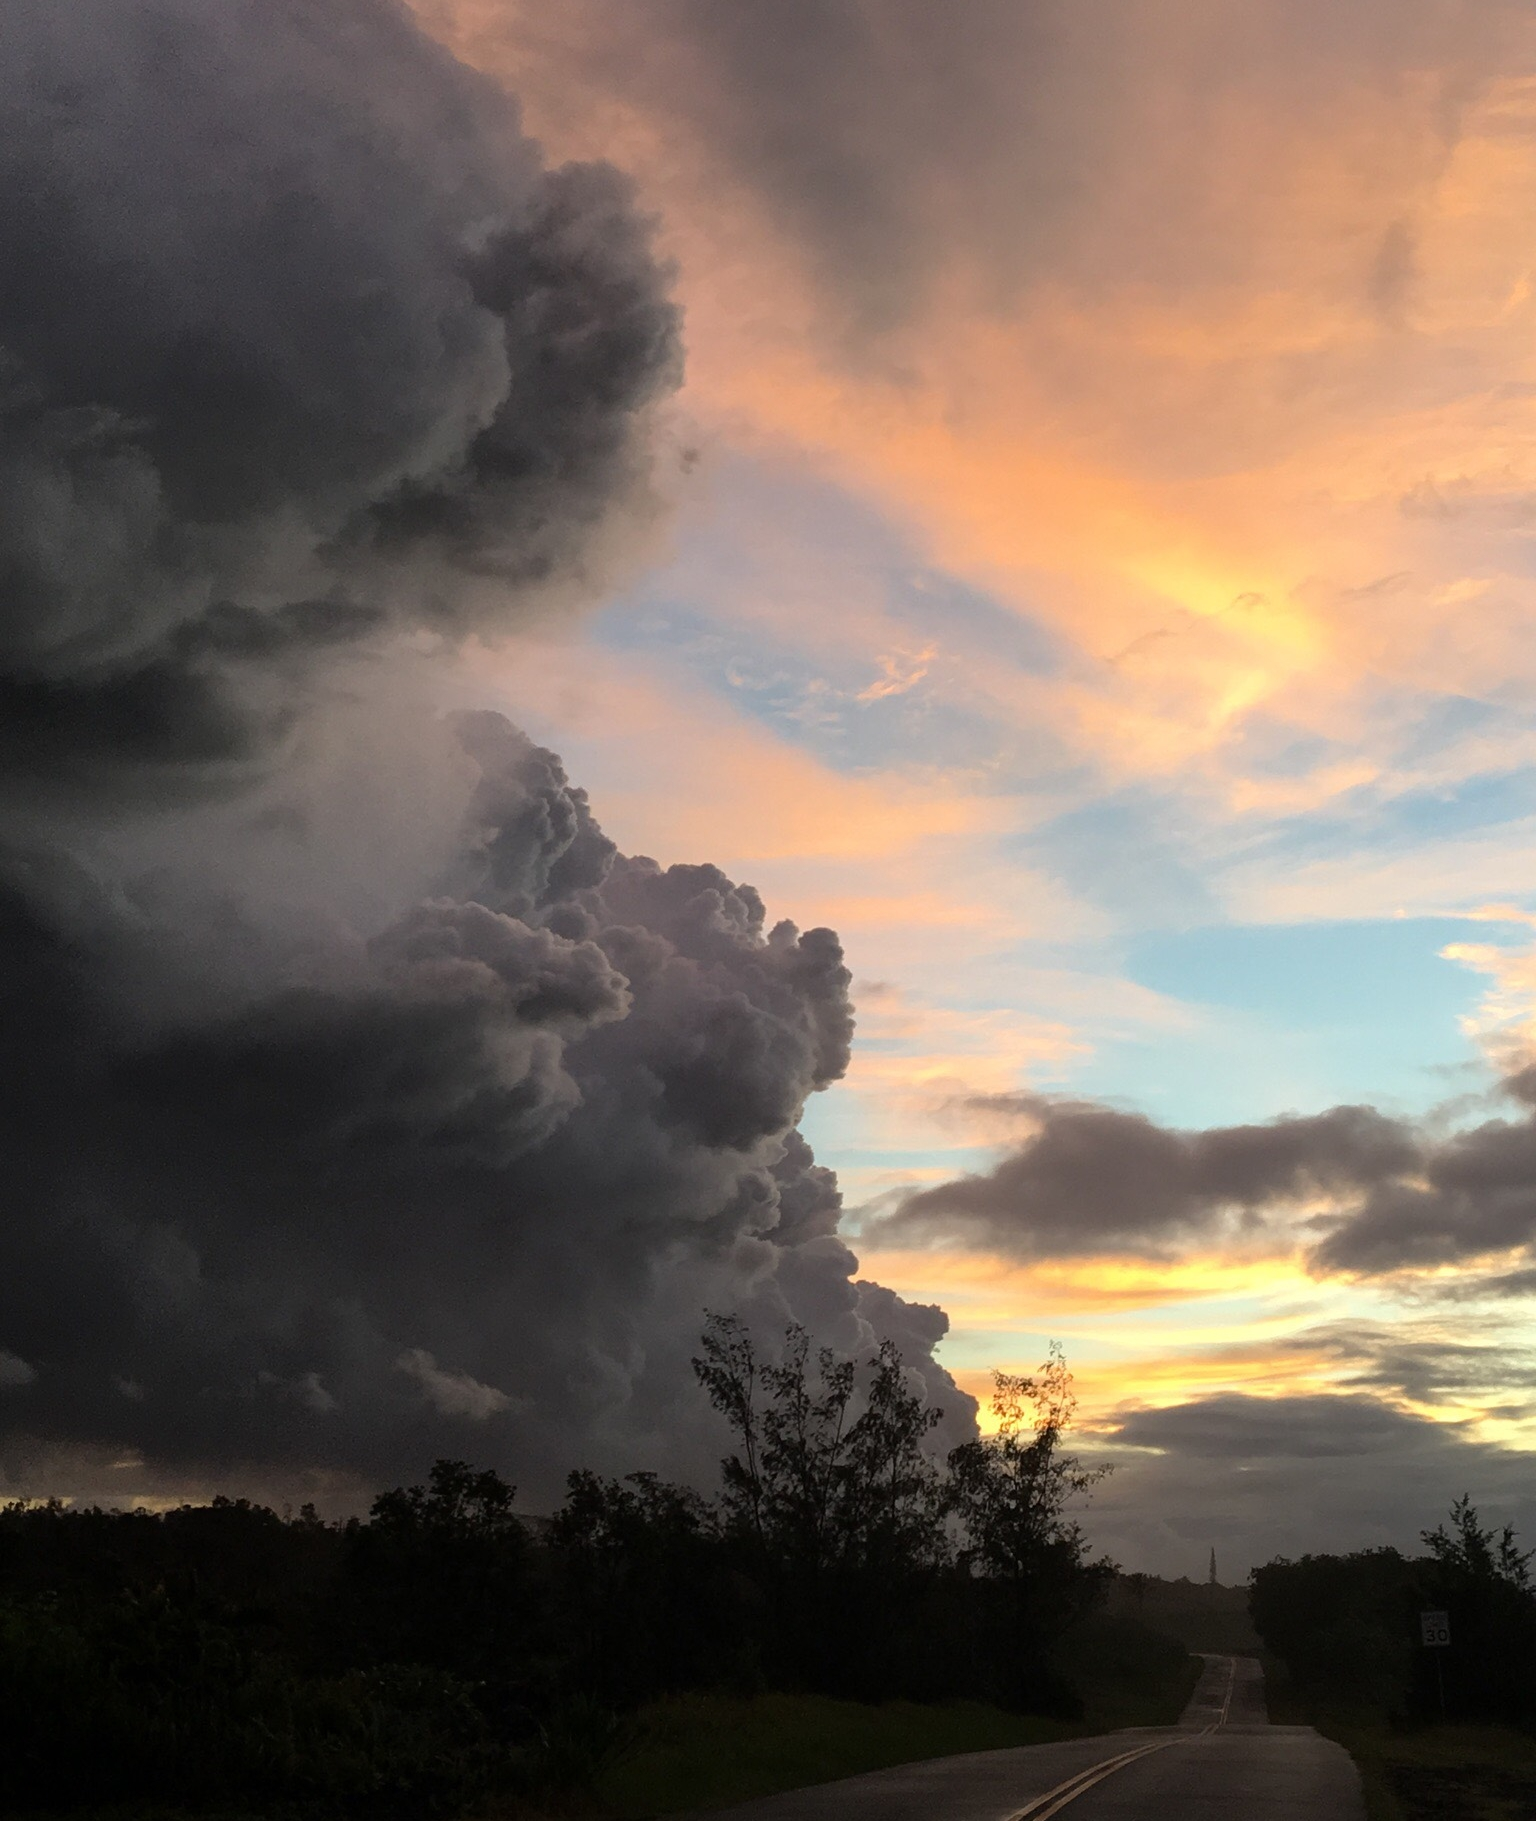 Pyrocumulus clouds seen toward Kilauea from Seaview Estates, about 4 miles away from the lava vent, on June 26, 2018. Credit: WCCO viewer Charlie Luke.